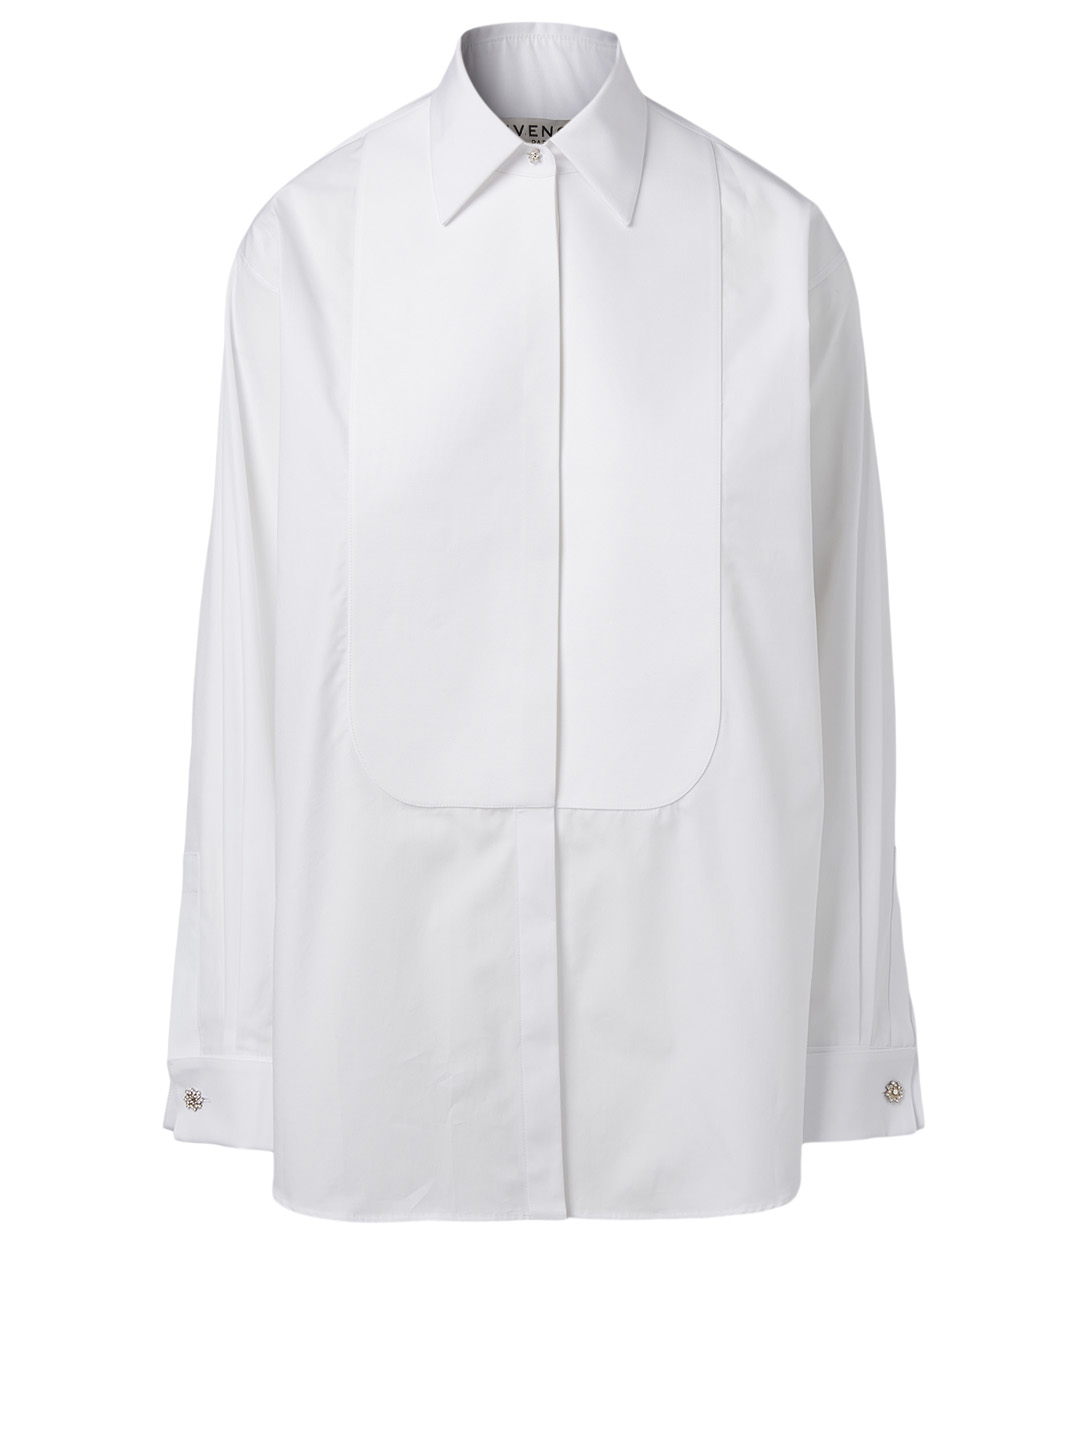 GIVENCHY Cotton Tuxedo Shirt Women's White